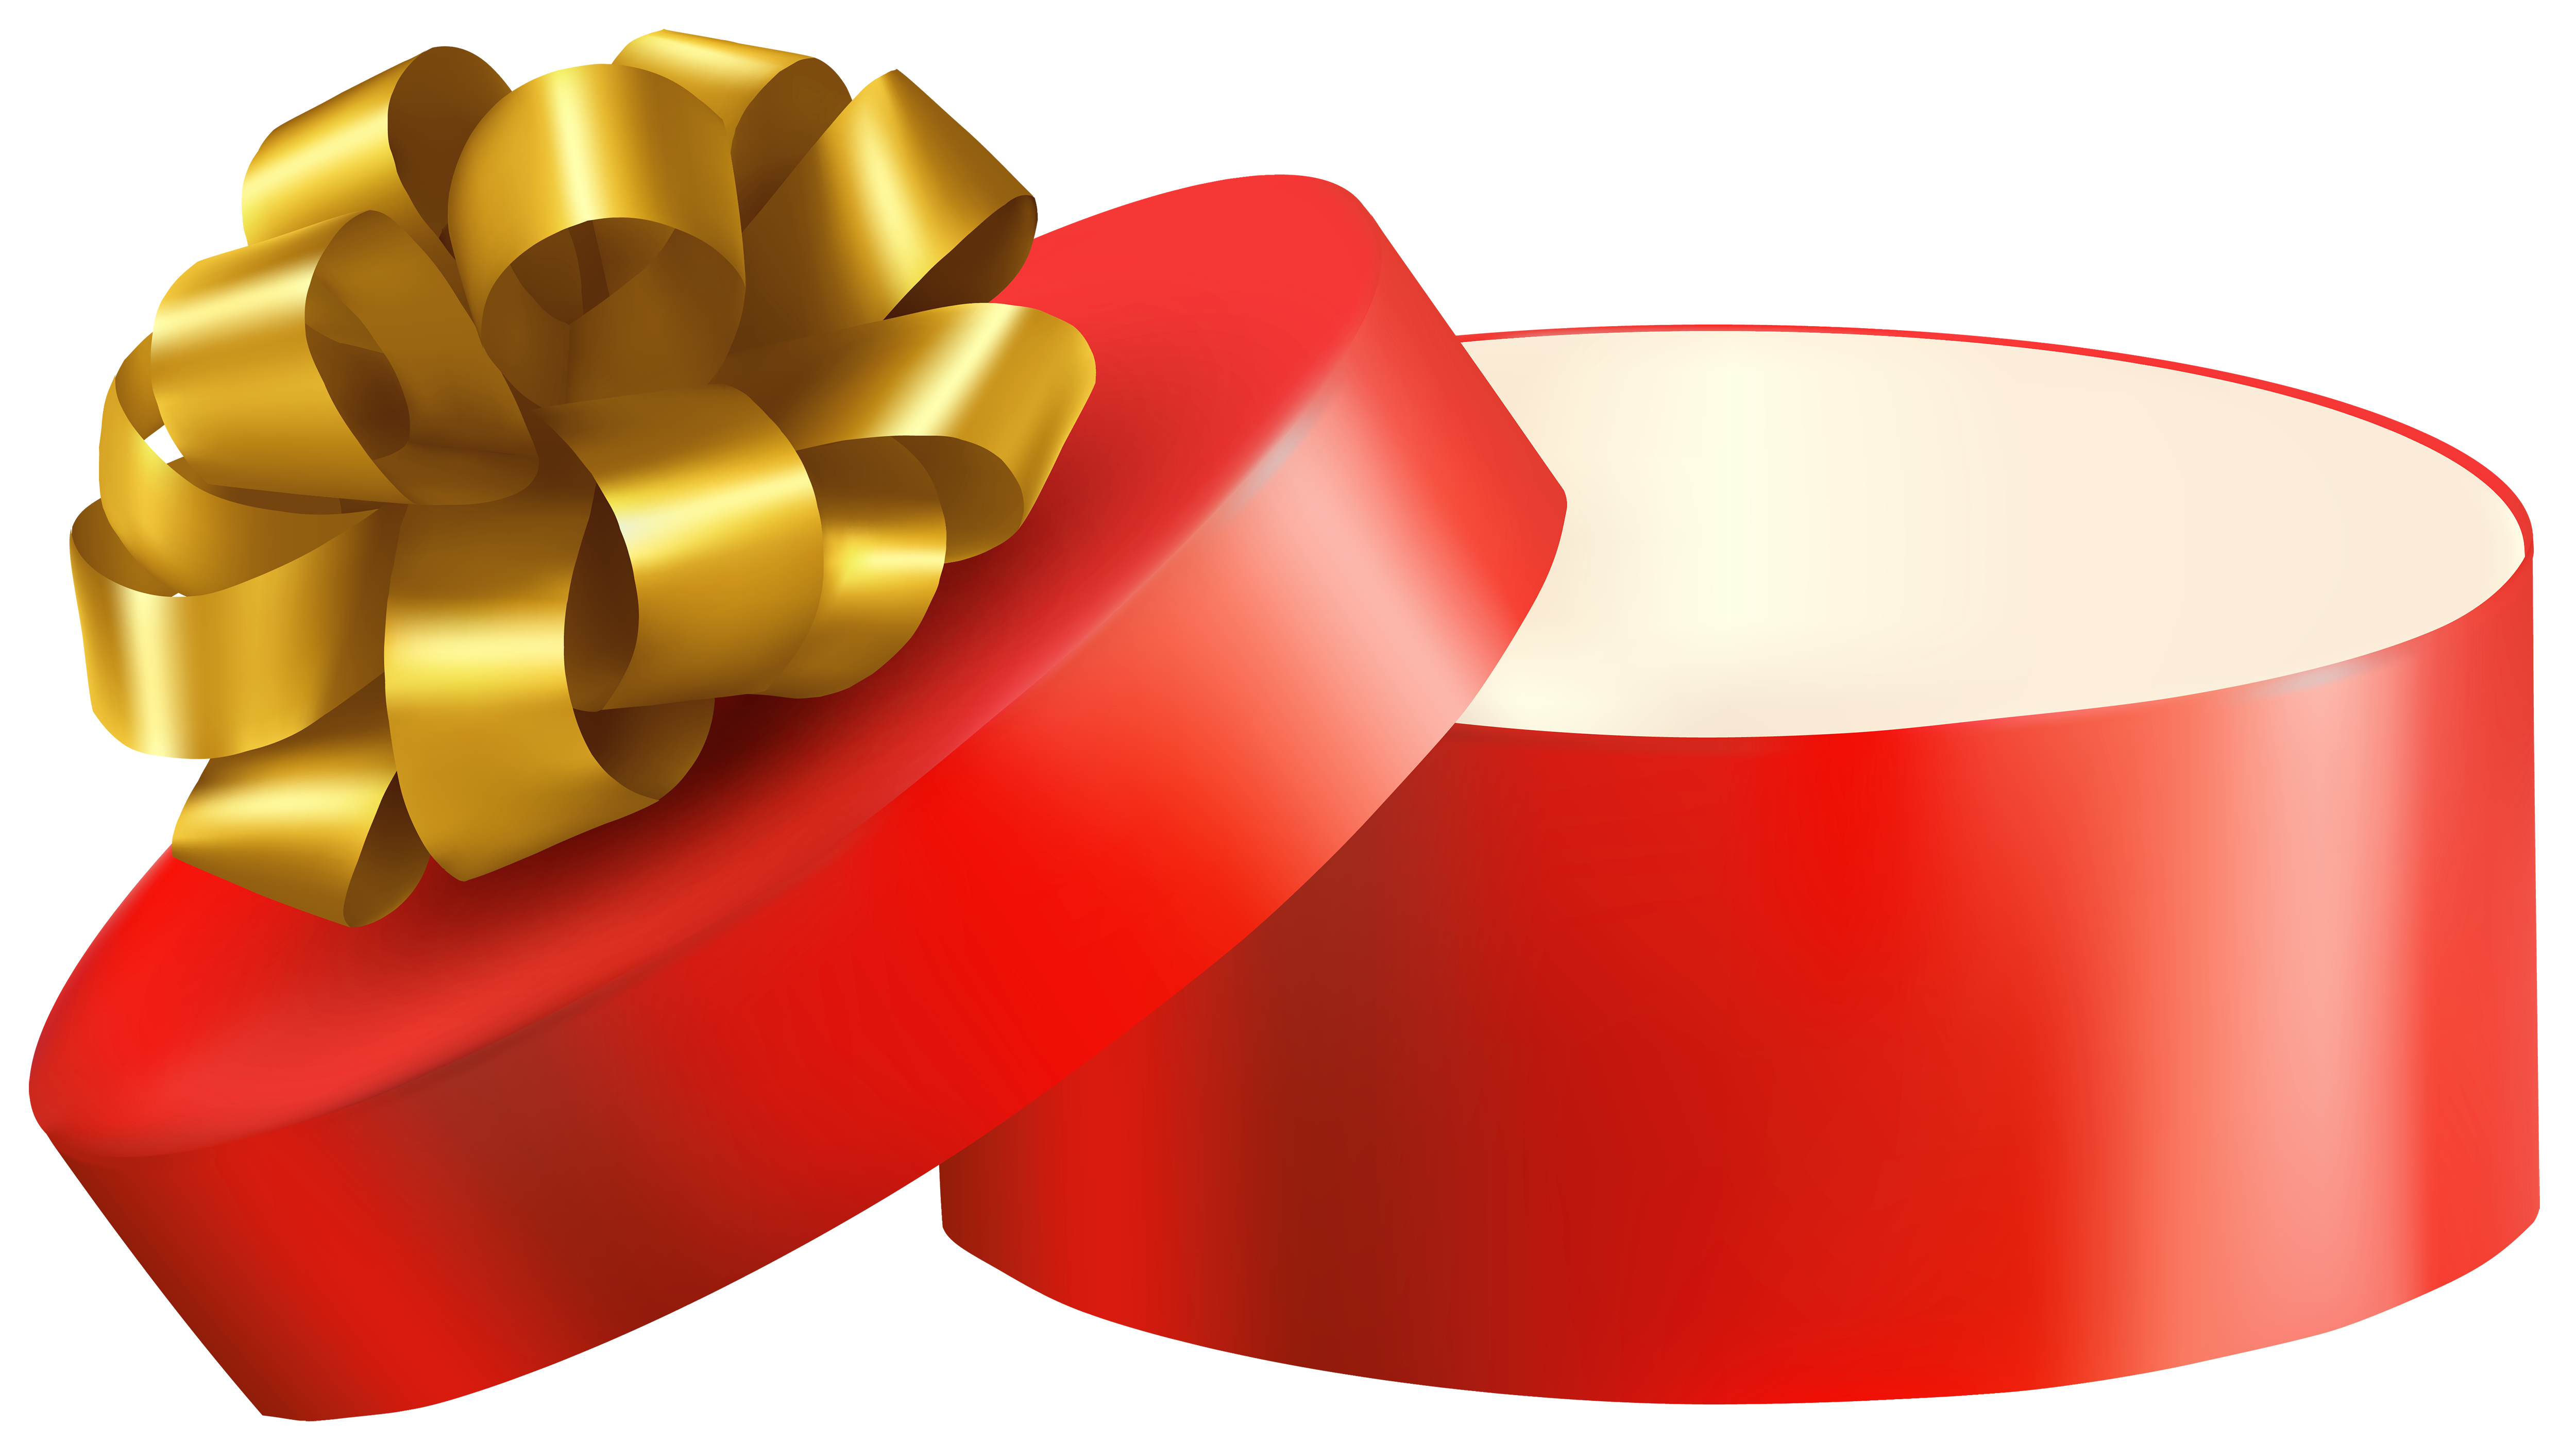 Red open png best. Gifts clipart small gift